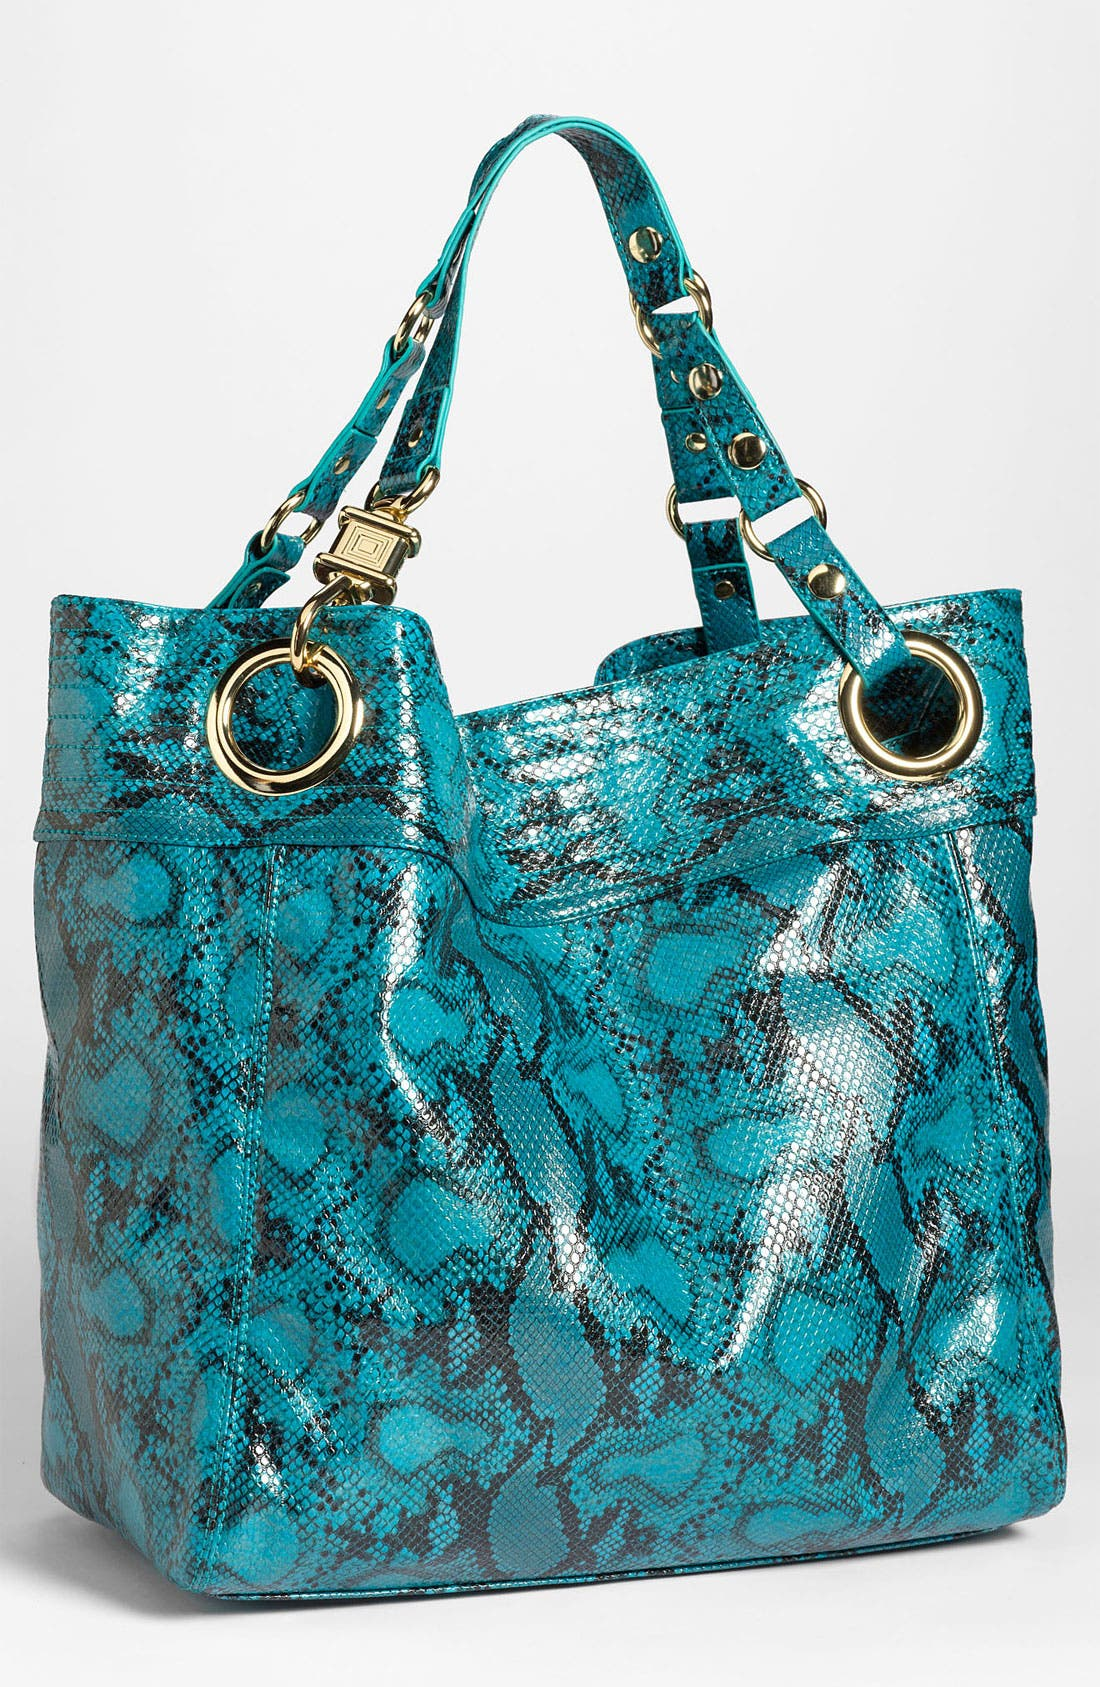 Main Image - Steven by Steve Madden 'Candy Coated' Snake Embossed Tote